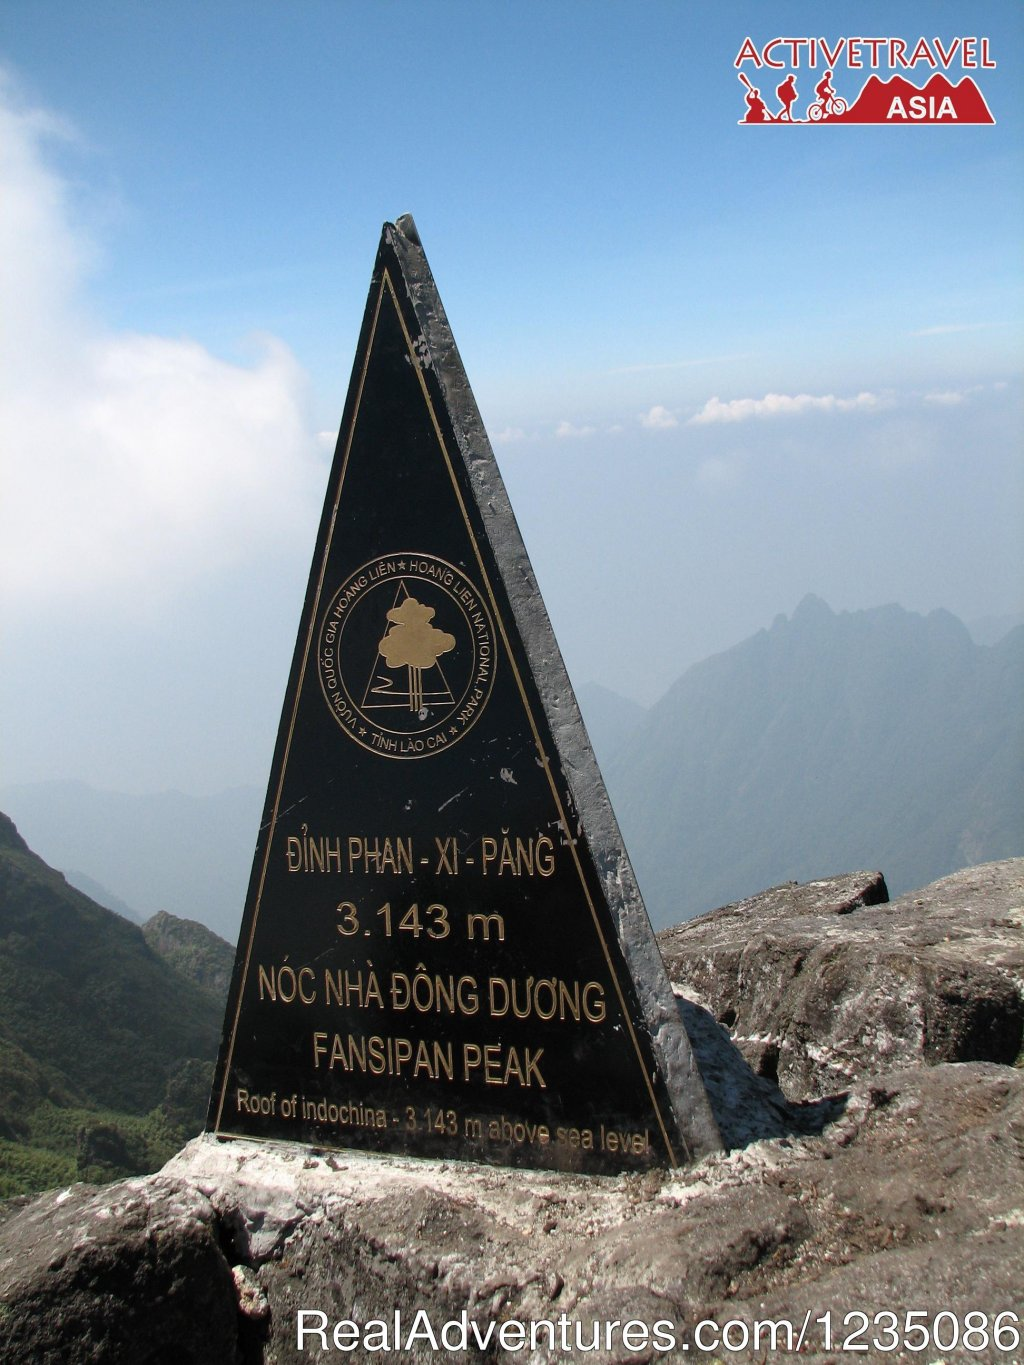 Conquer Mount Fansipan, Vietnam - the roof of indochina